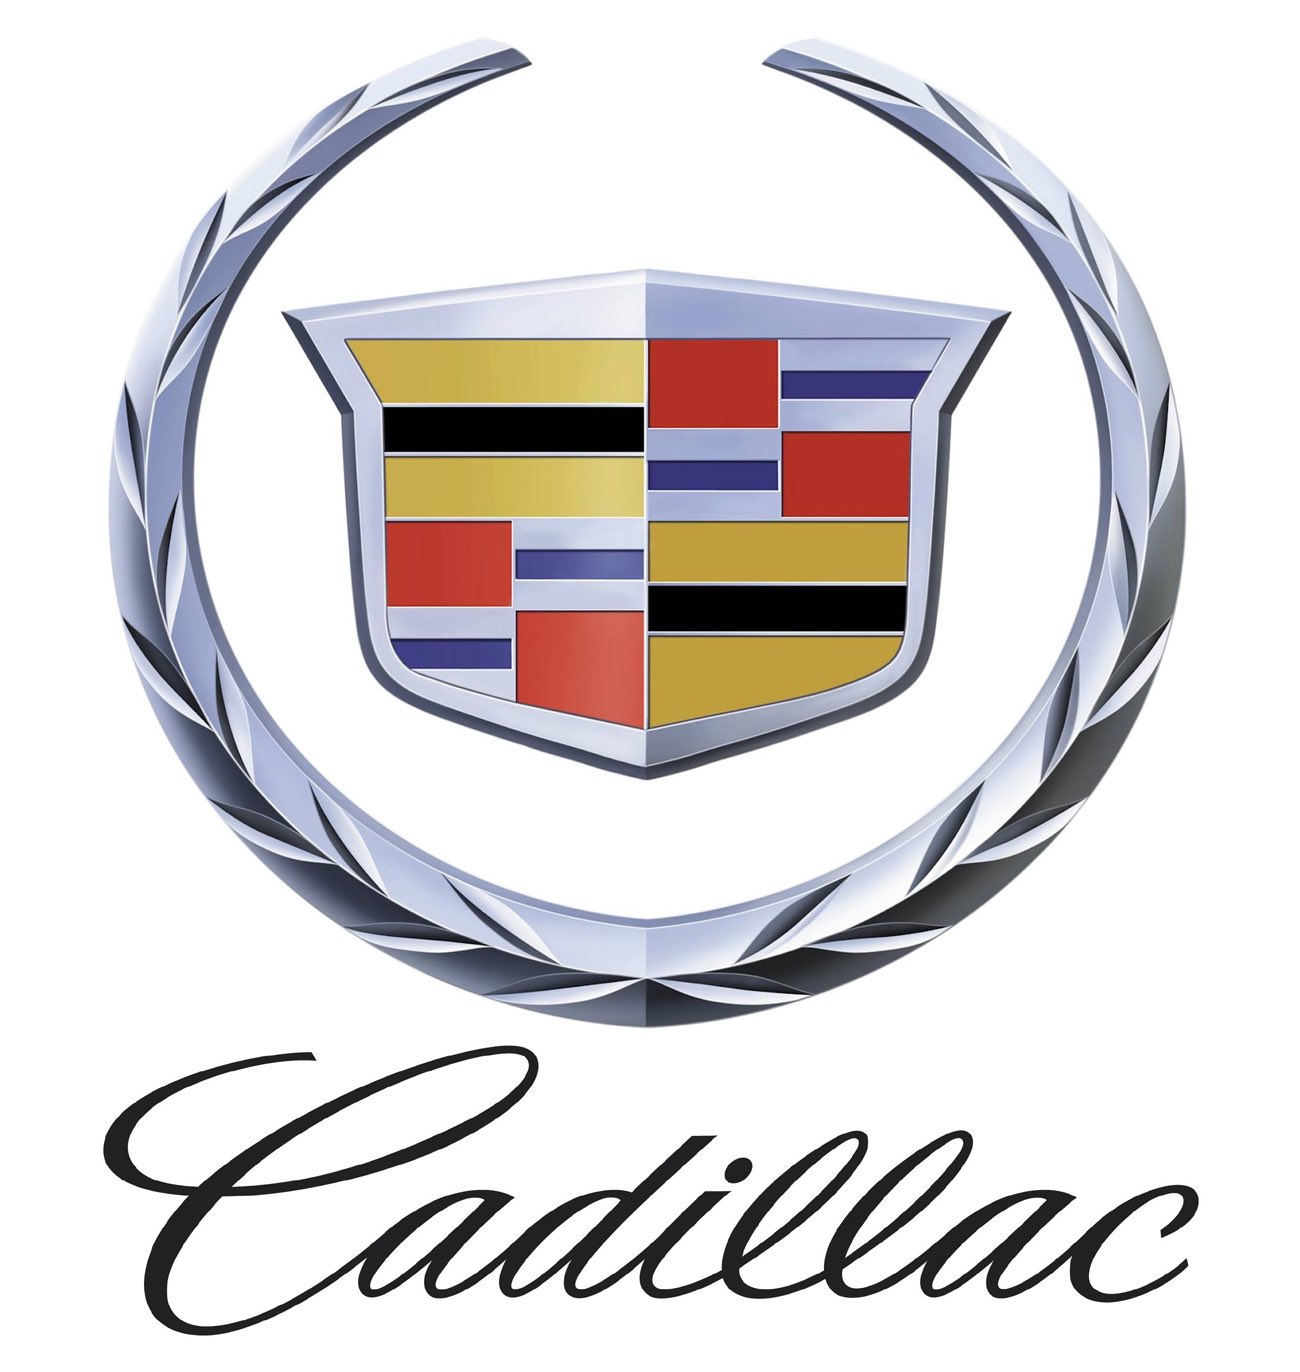 branden hunter on twitter company cadillac motor car division founder s henry m leland financial backers william murphy lemuel brown year 1902 in detroit famous cars seville eldorado deville escalade fleetwood twitter